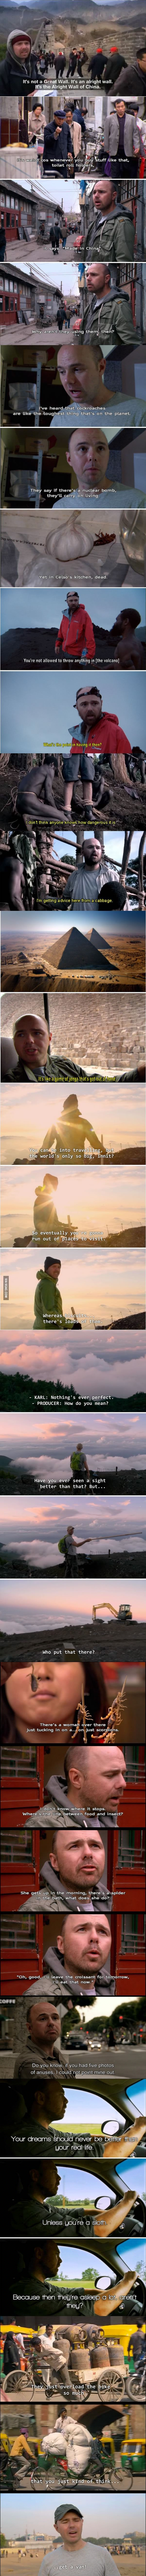 Karl Pilkington: Lessons of Life